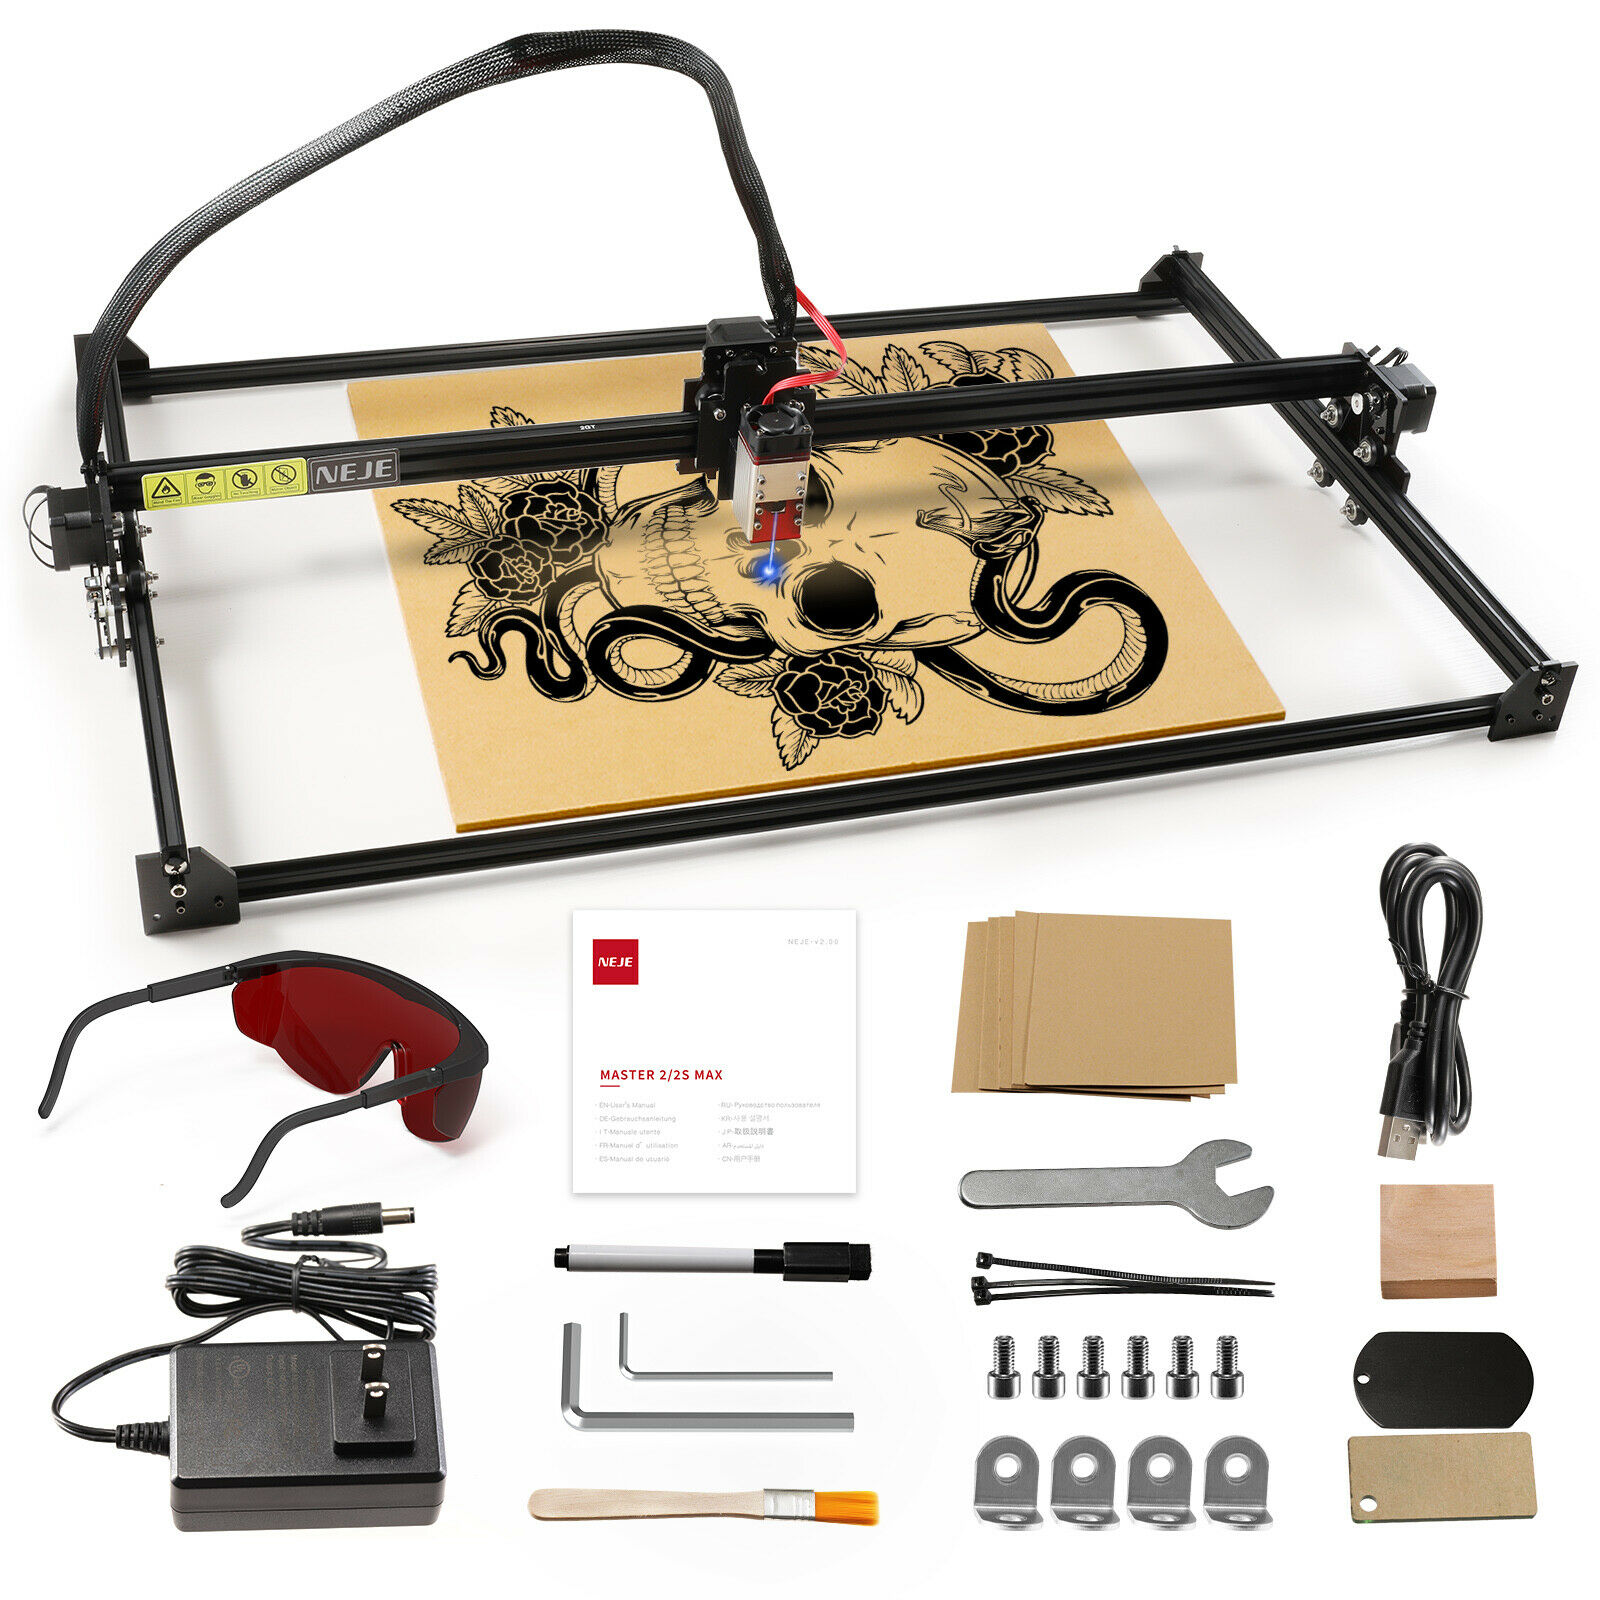 NEJE Master 2S Max 40Watt 810X460mm CNC Laser Engraving Cutting Machine High Power Laser Cutter with Lightburn for Plywood MDF enlarge